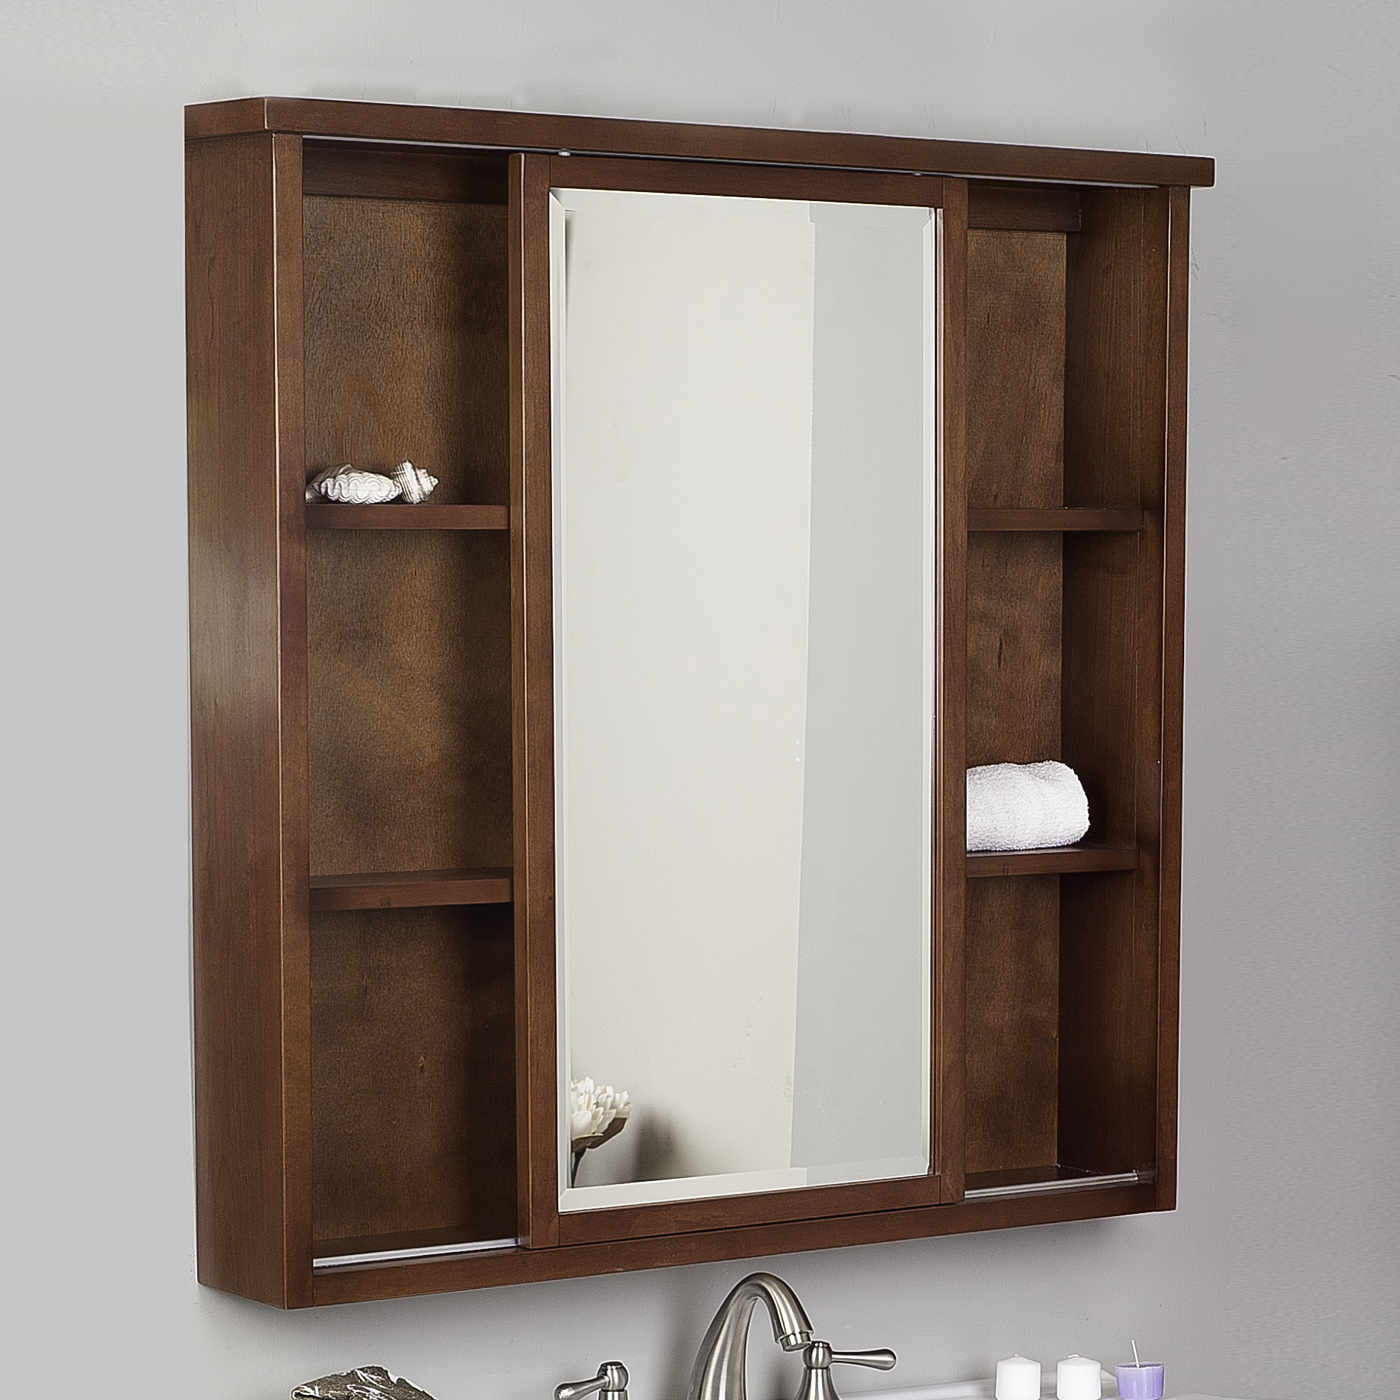 stunning wood lowes medicine cabinets in brown plus mirror with six spaces